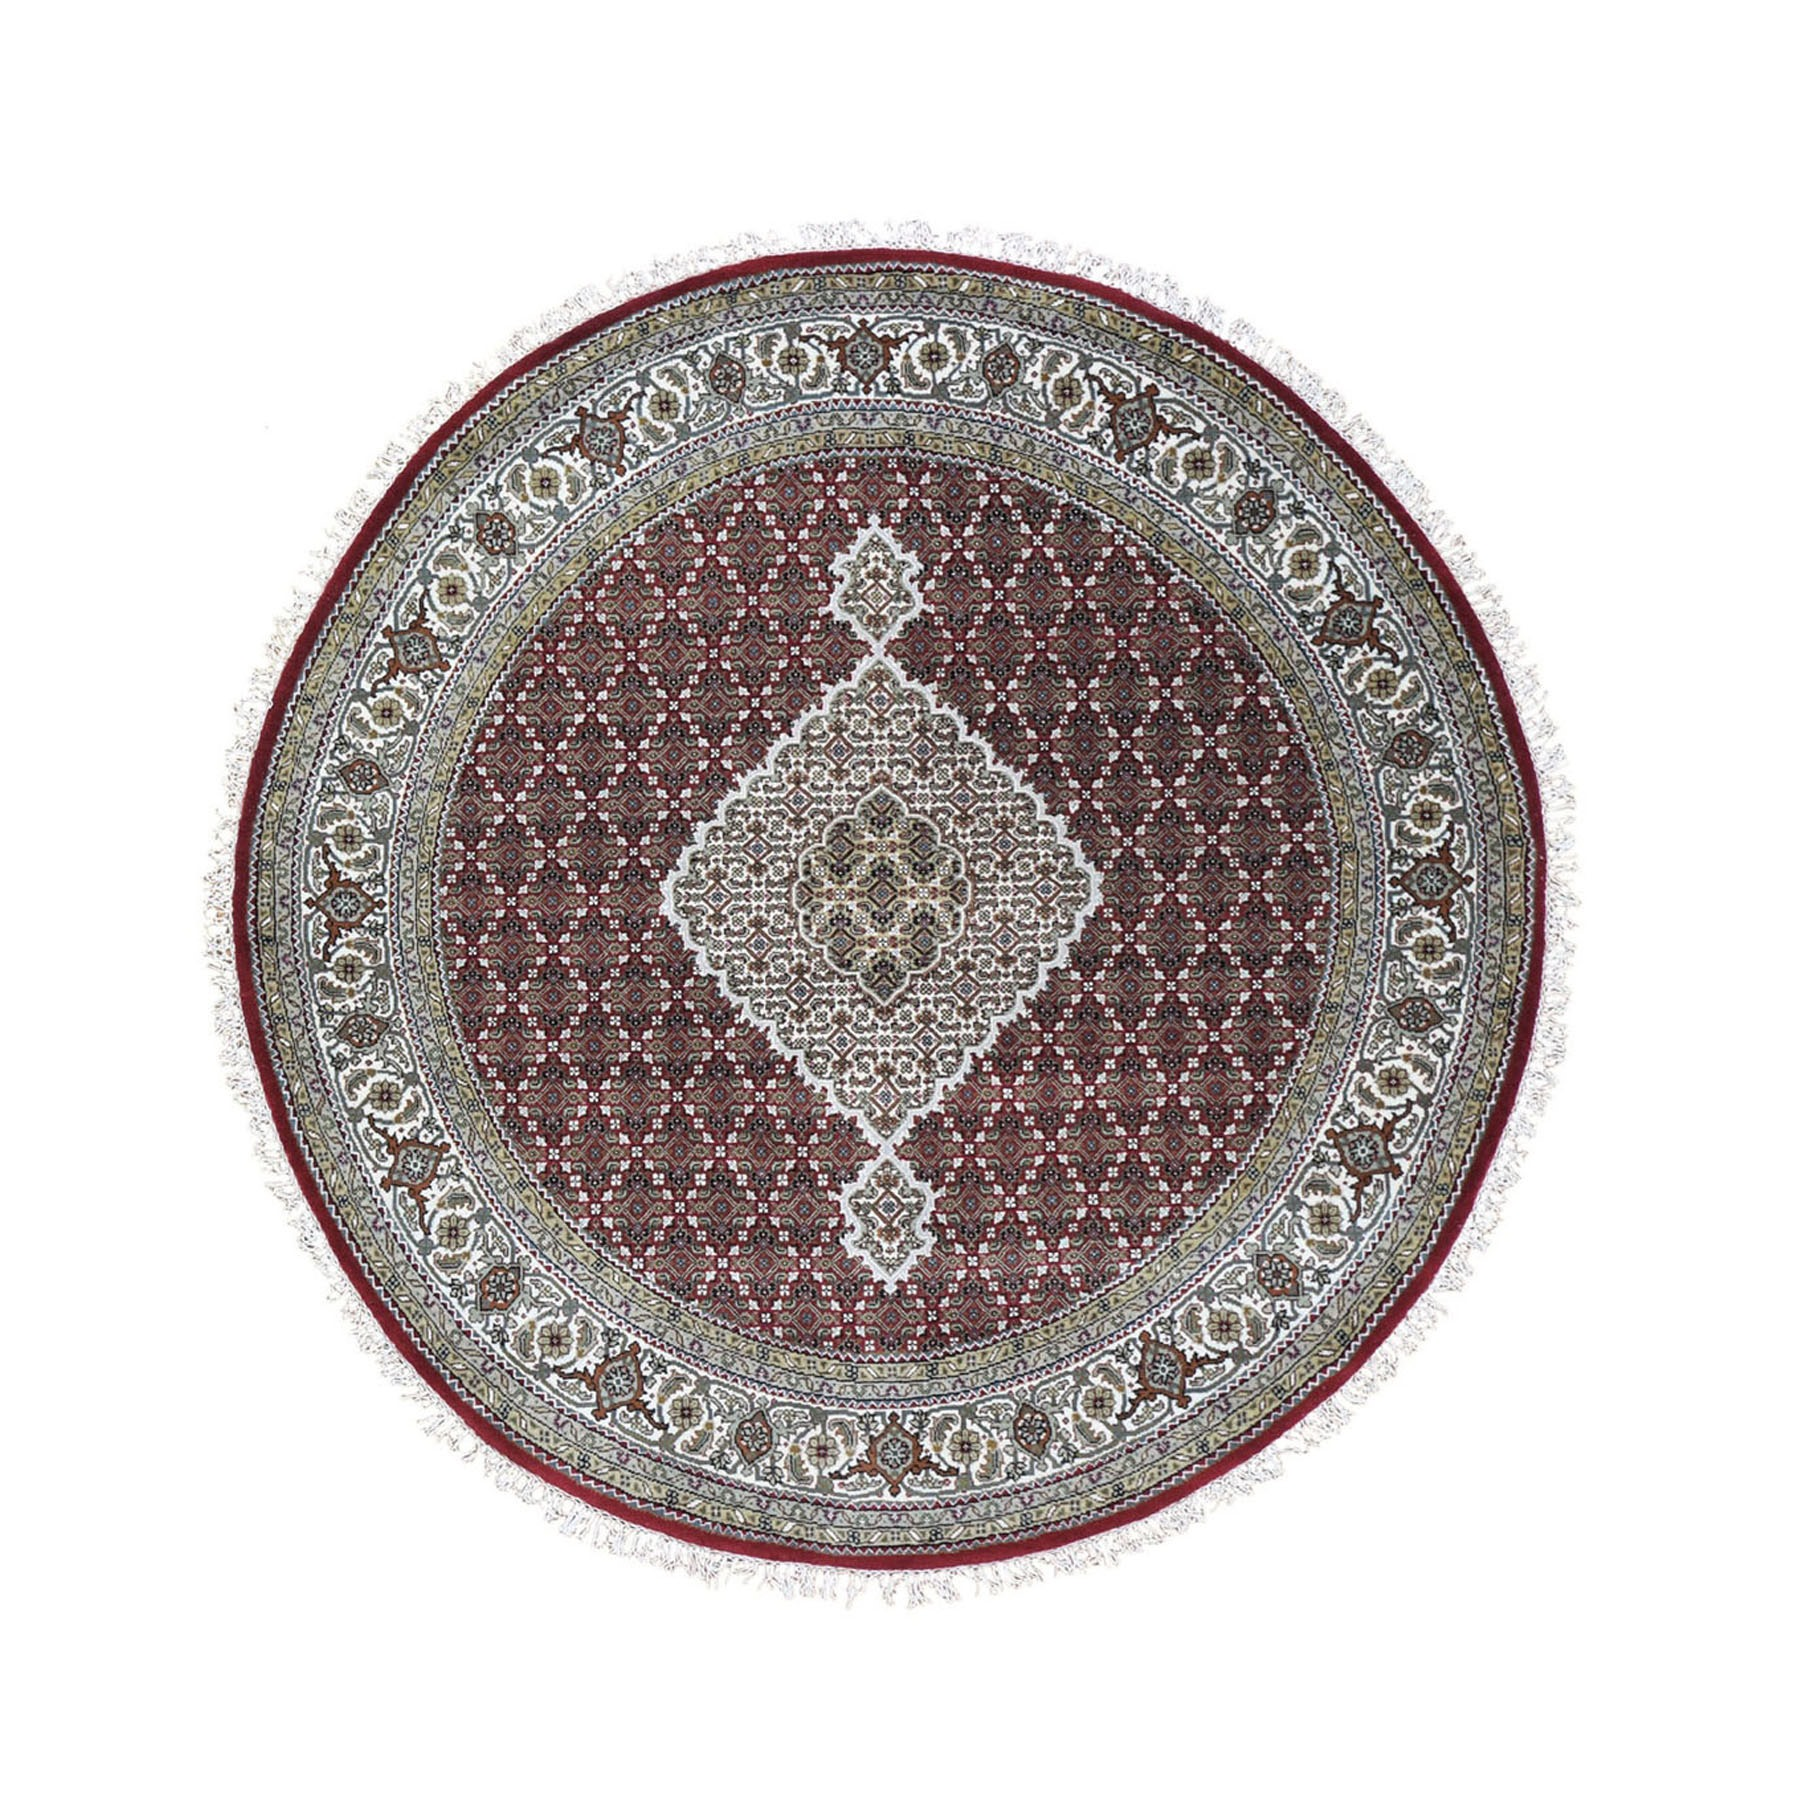 Pirniakan Collection Hand Knotted Red Rug No: 0199022